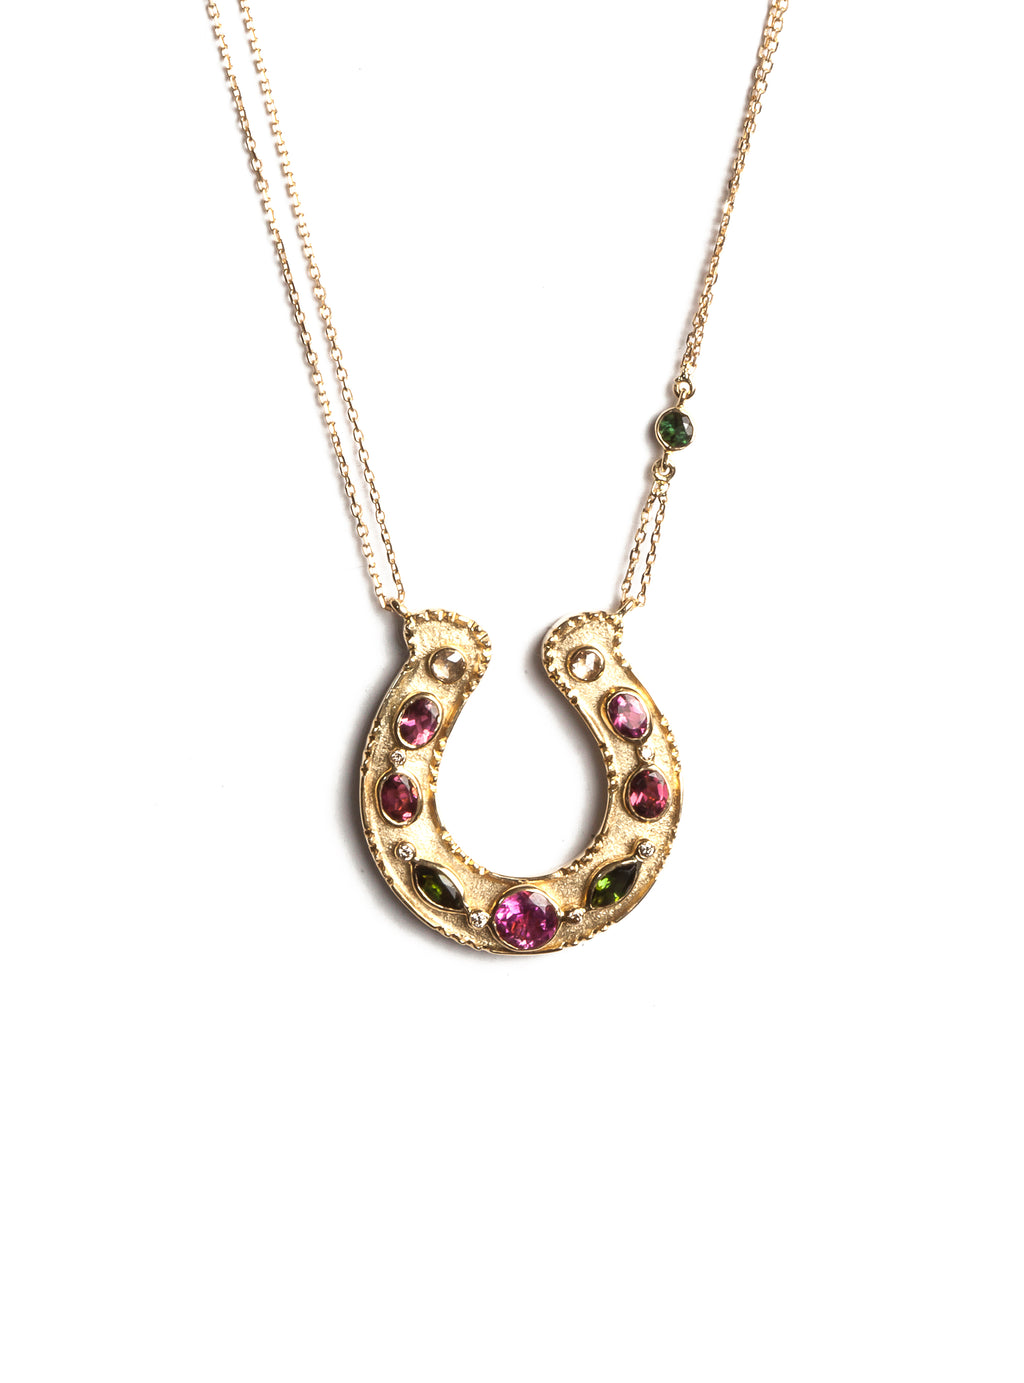 Horseshoe Necklace with Multicolored Tourmalines and Diamonds